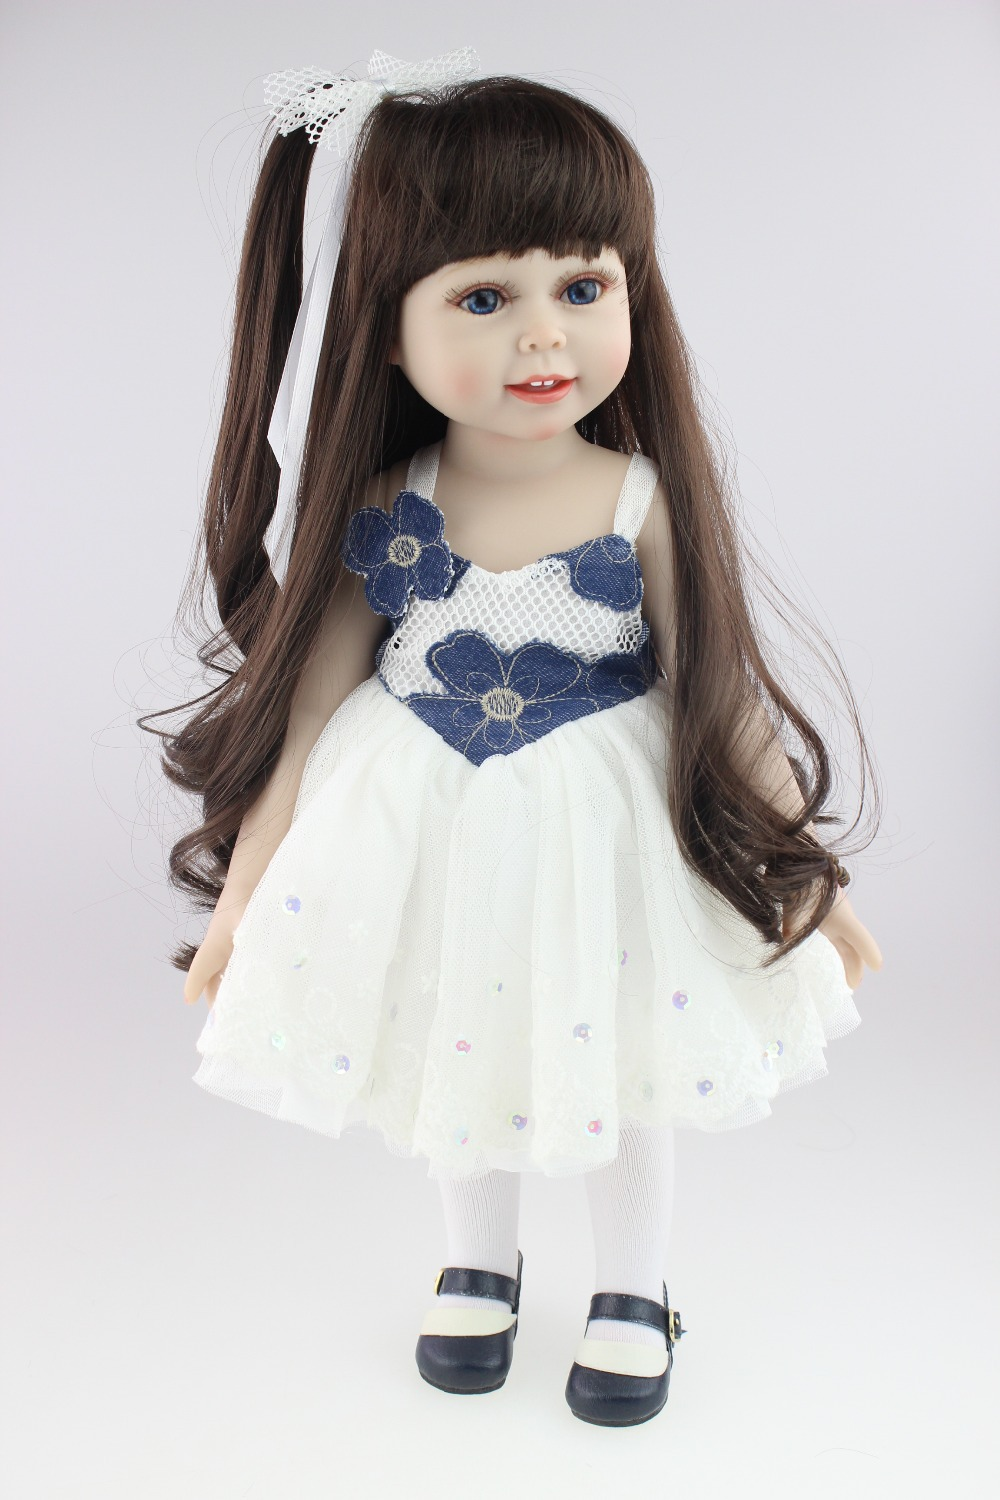 soft gentle touch 18inches American girl doll Journey Girl Dollie& me fashion doll birthday gift toys for girl children lifelike american 18 inches girl doll prices toy for children vinyl princess doll toys girl newest design